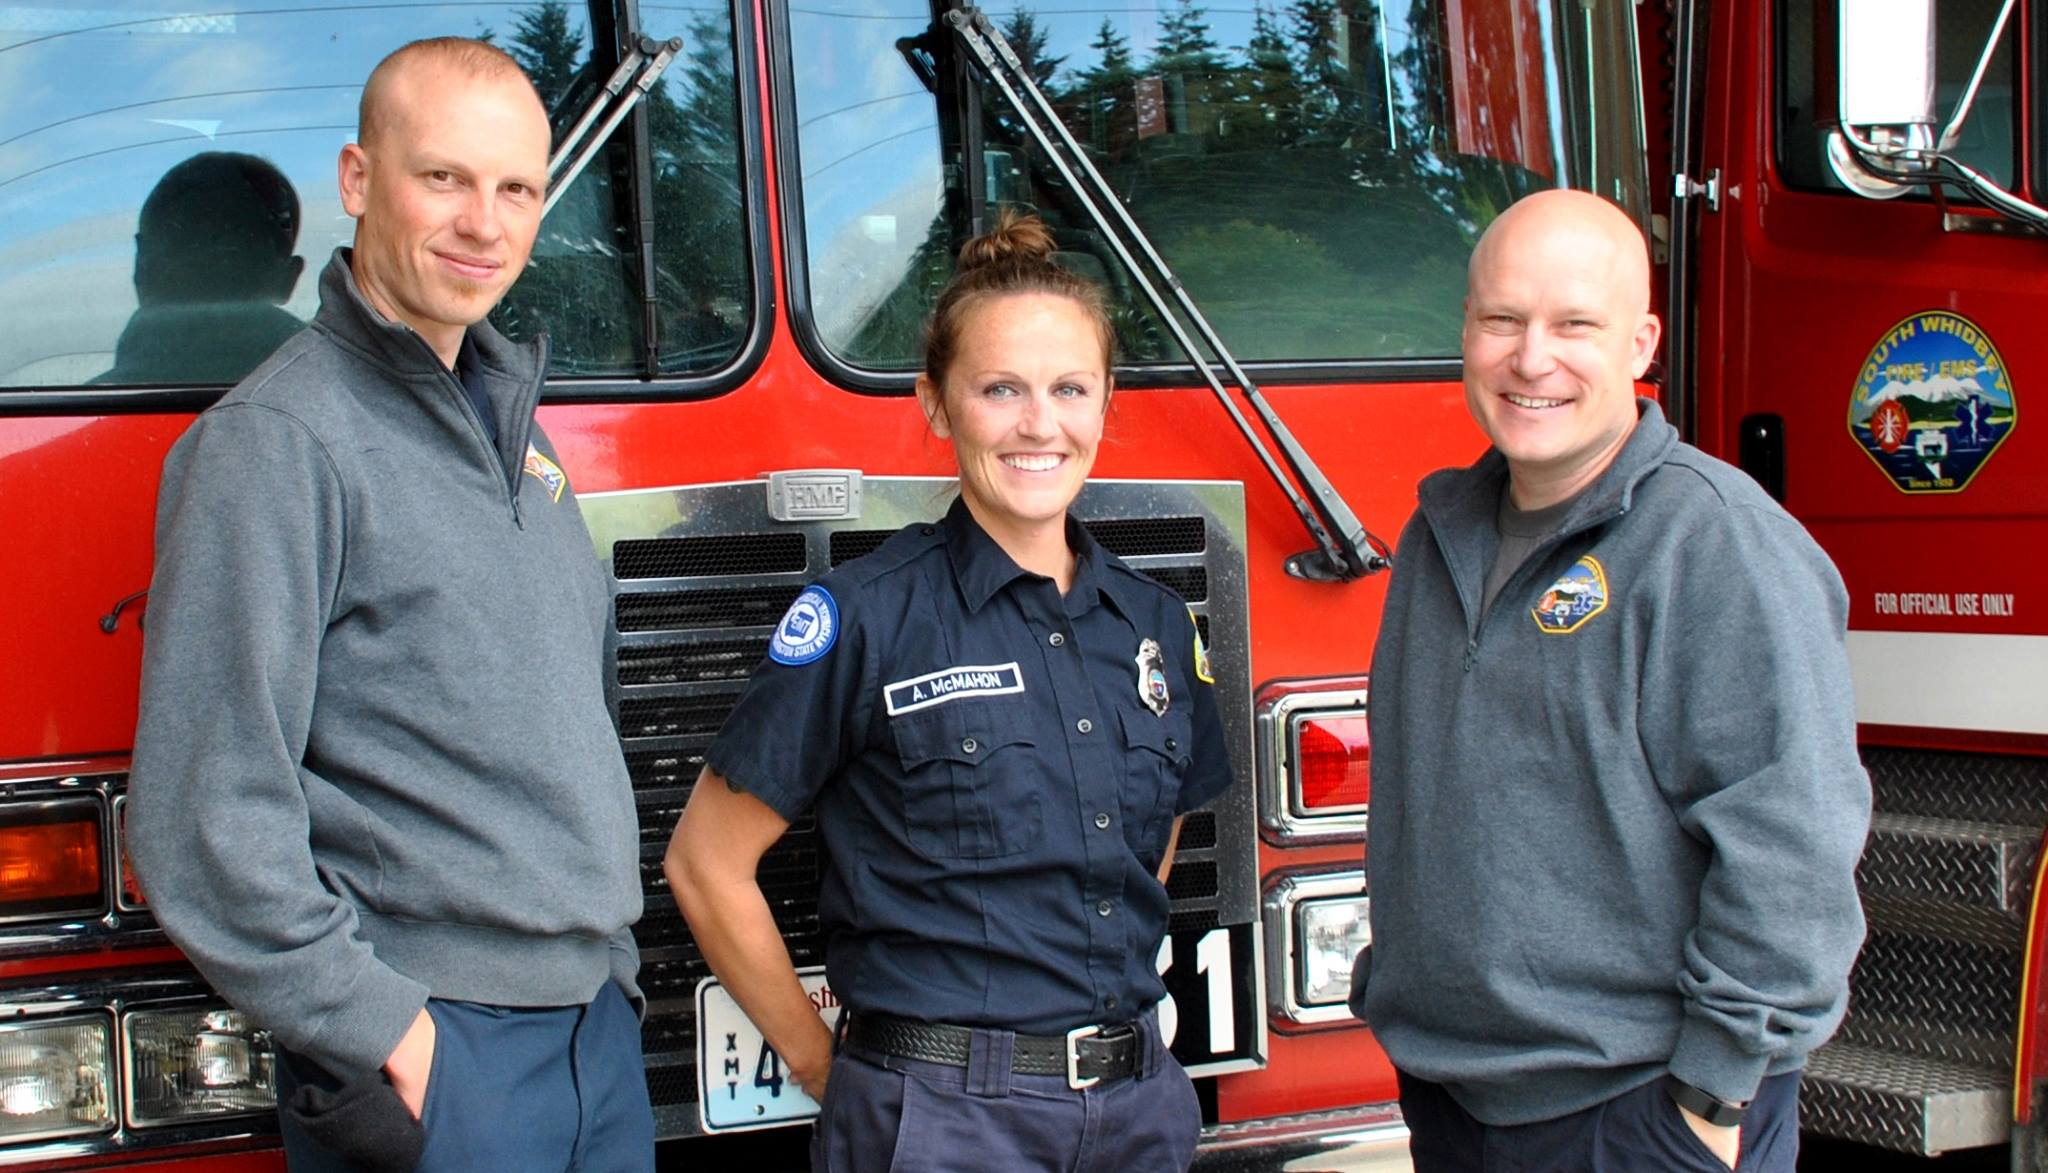 The women of South Whidbey Fire/EMS: changing perceptions ...